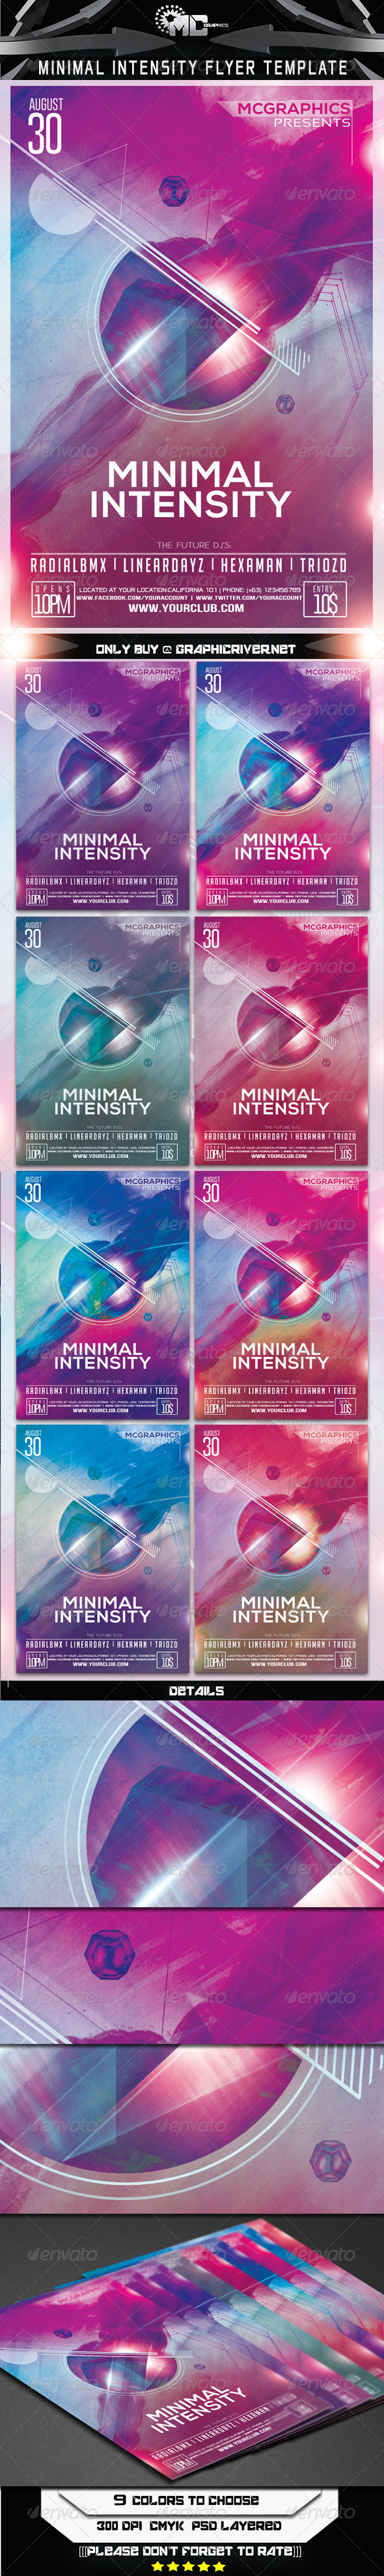 Minimal Intensity Flyer Template - Events Flyers